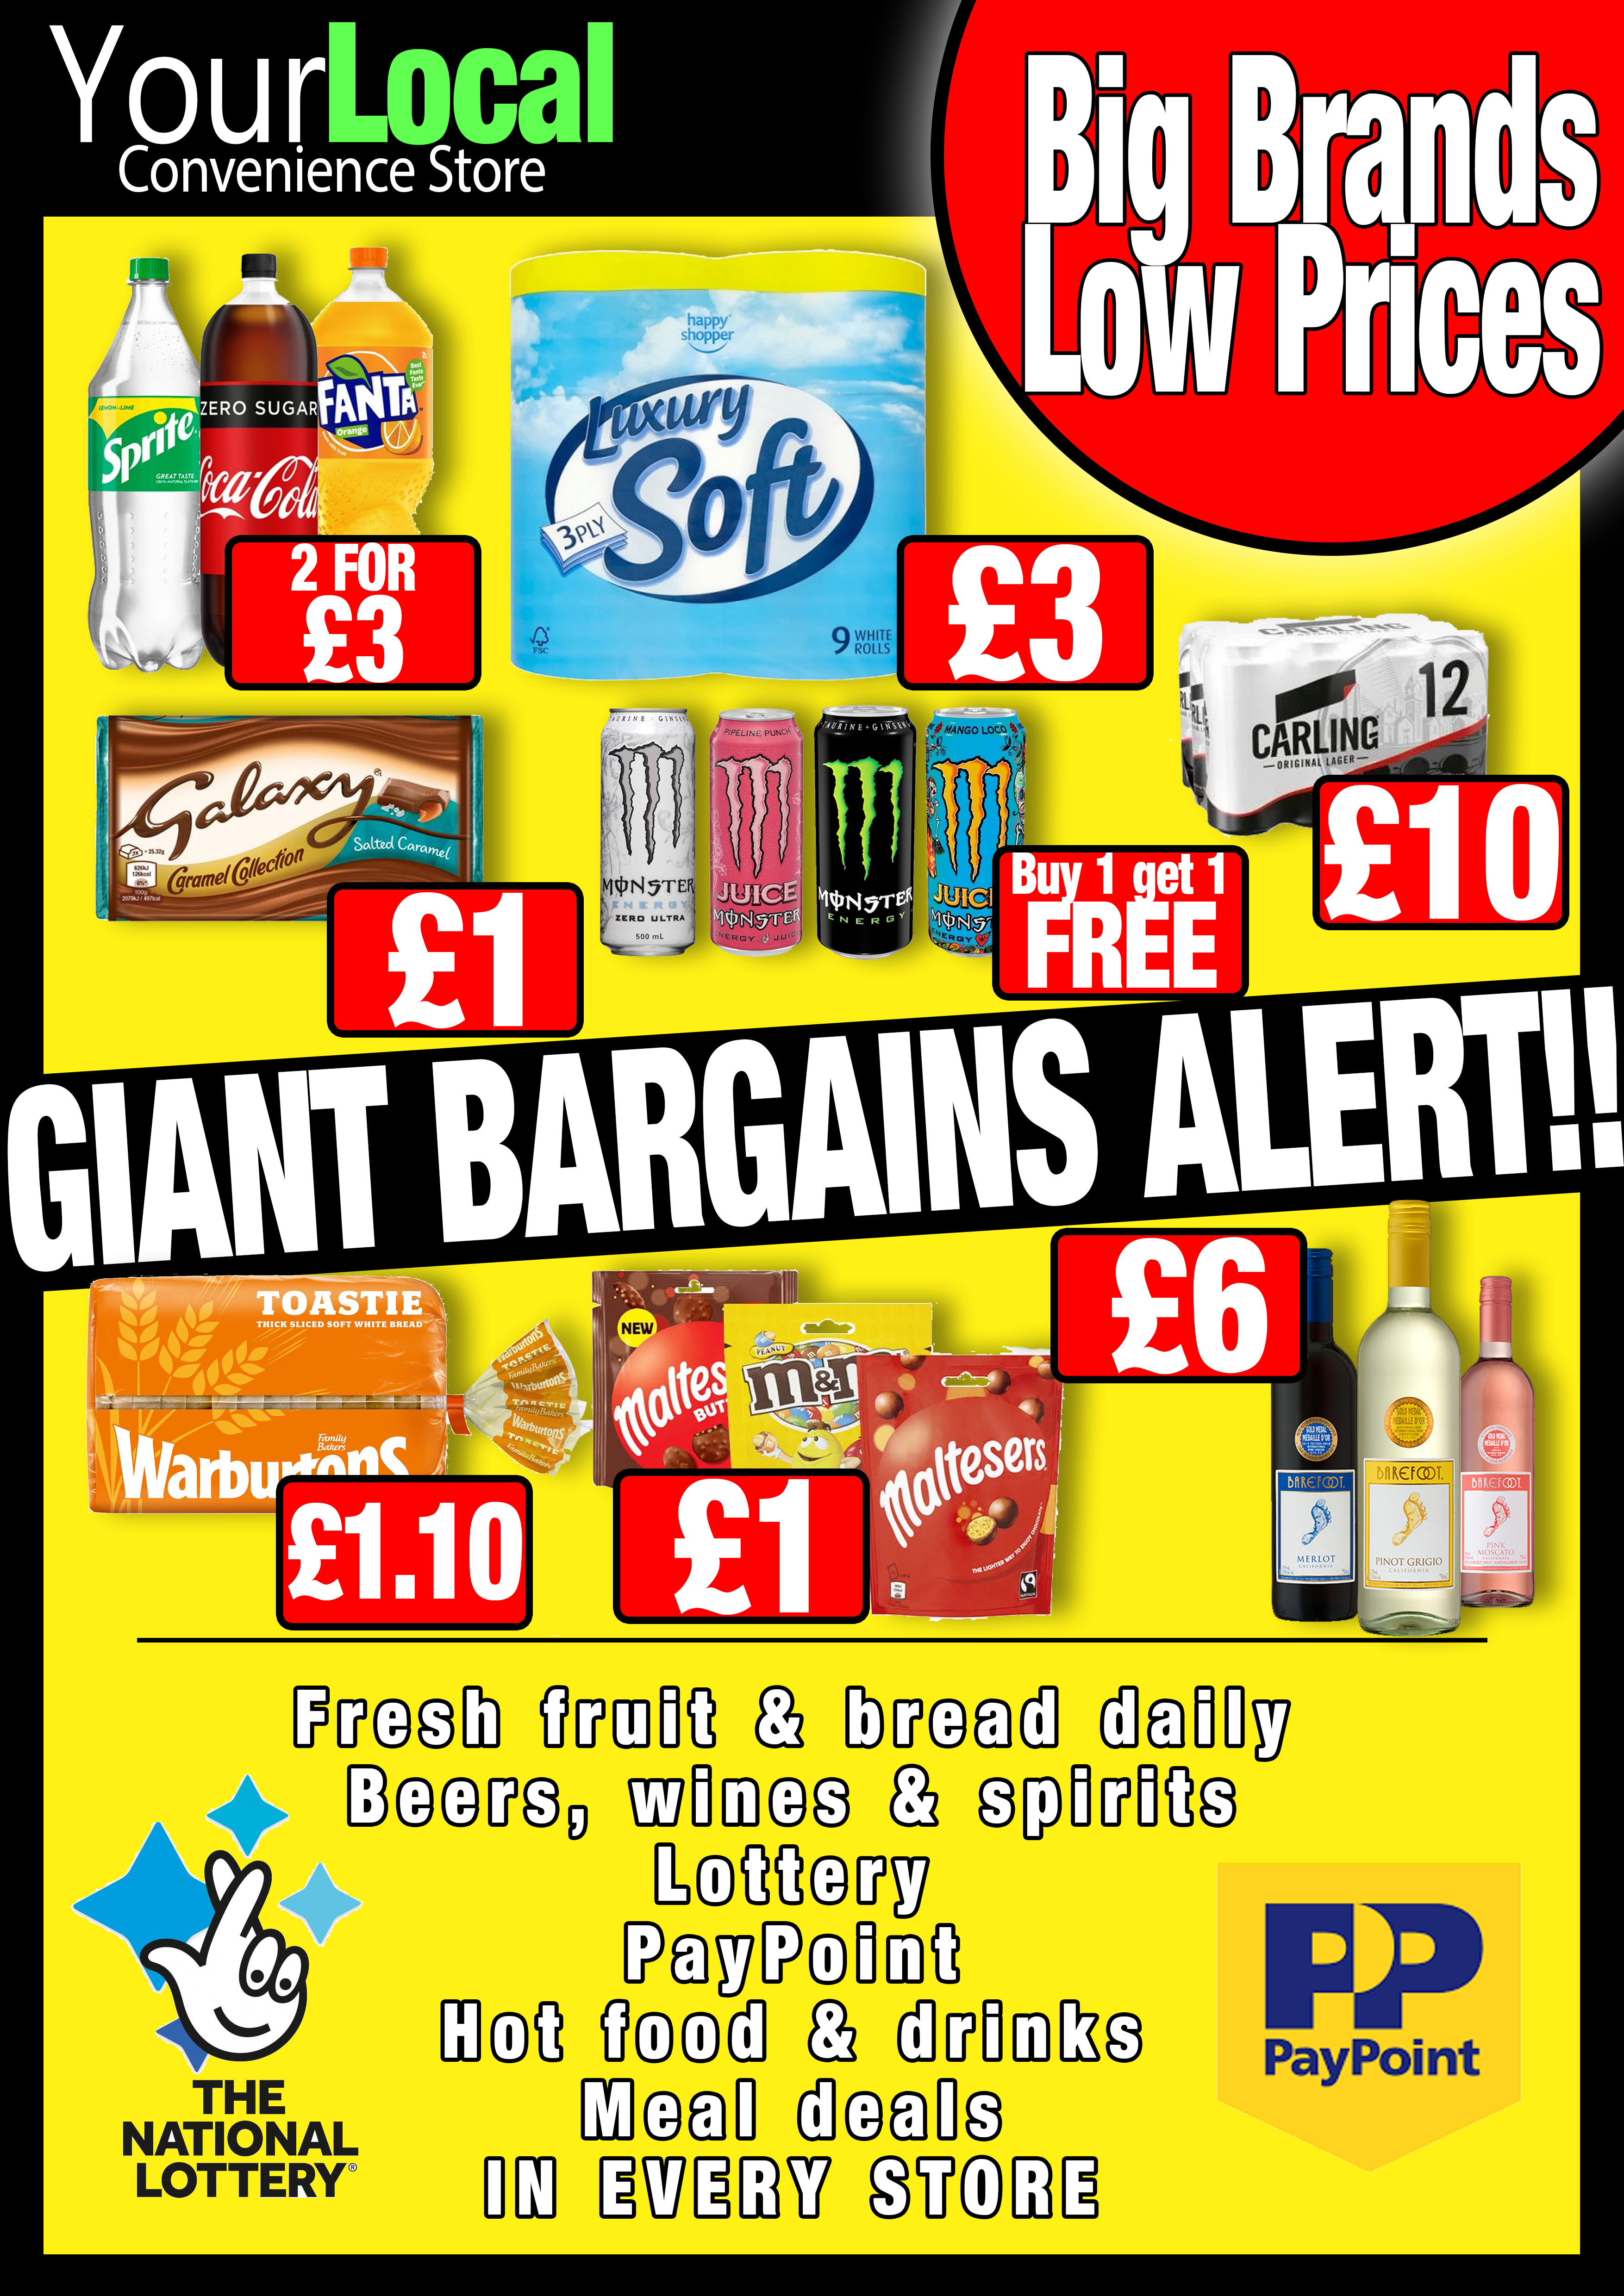 YourLocal discount poster